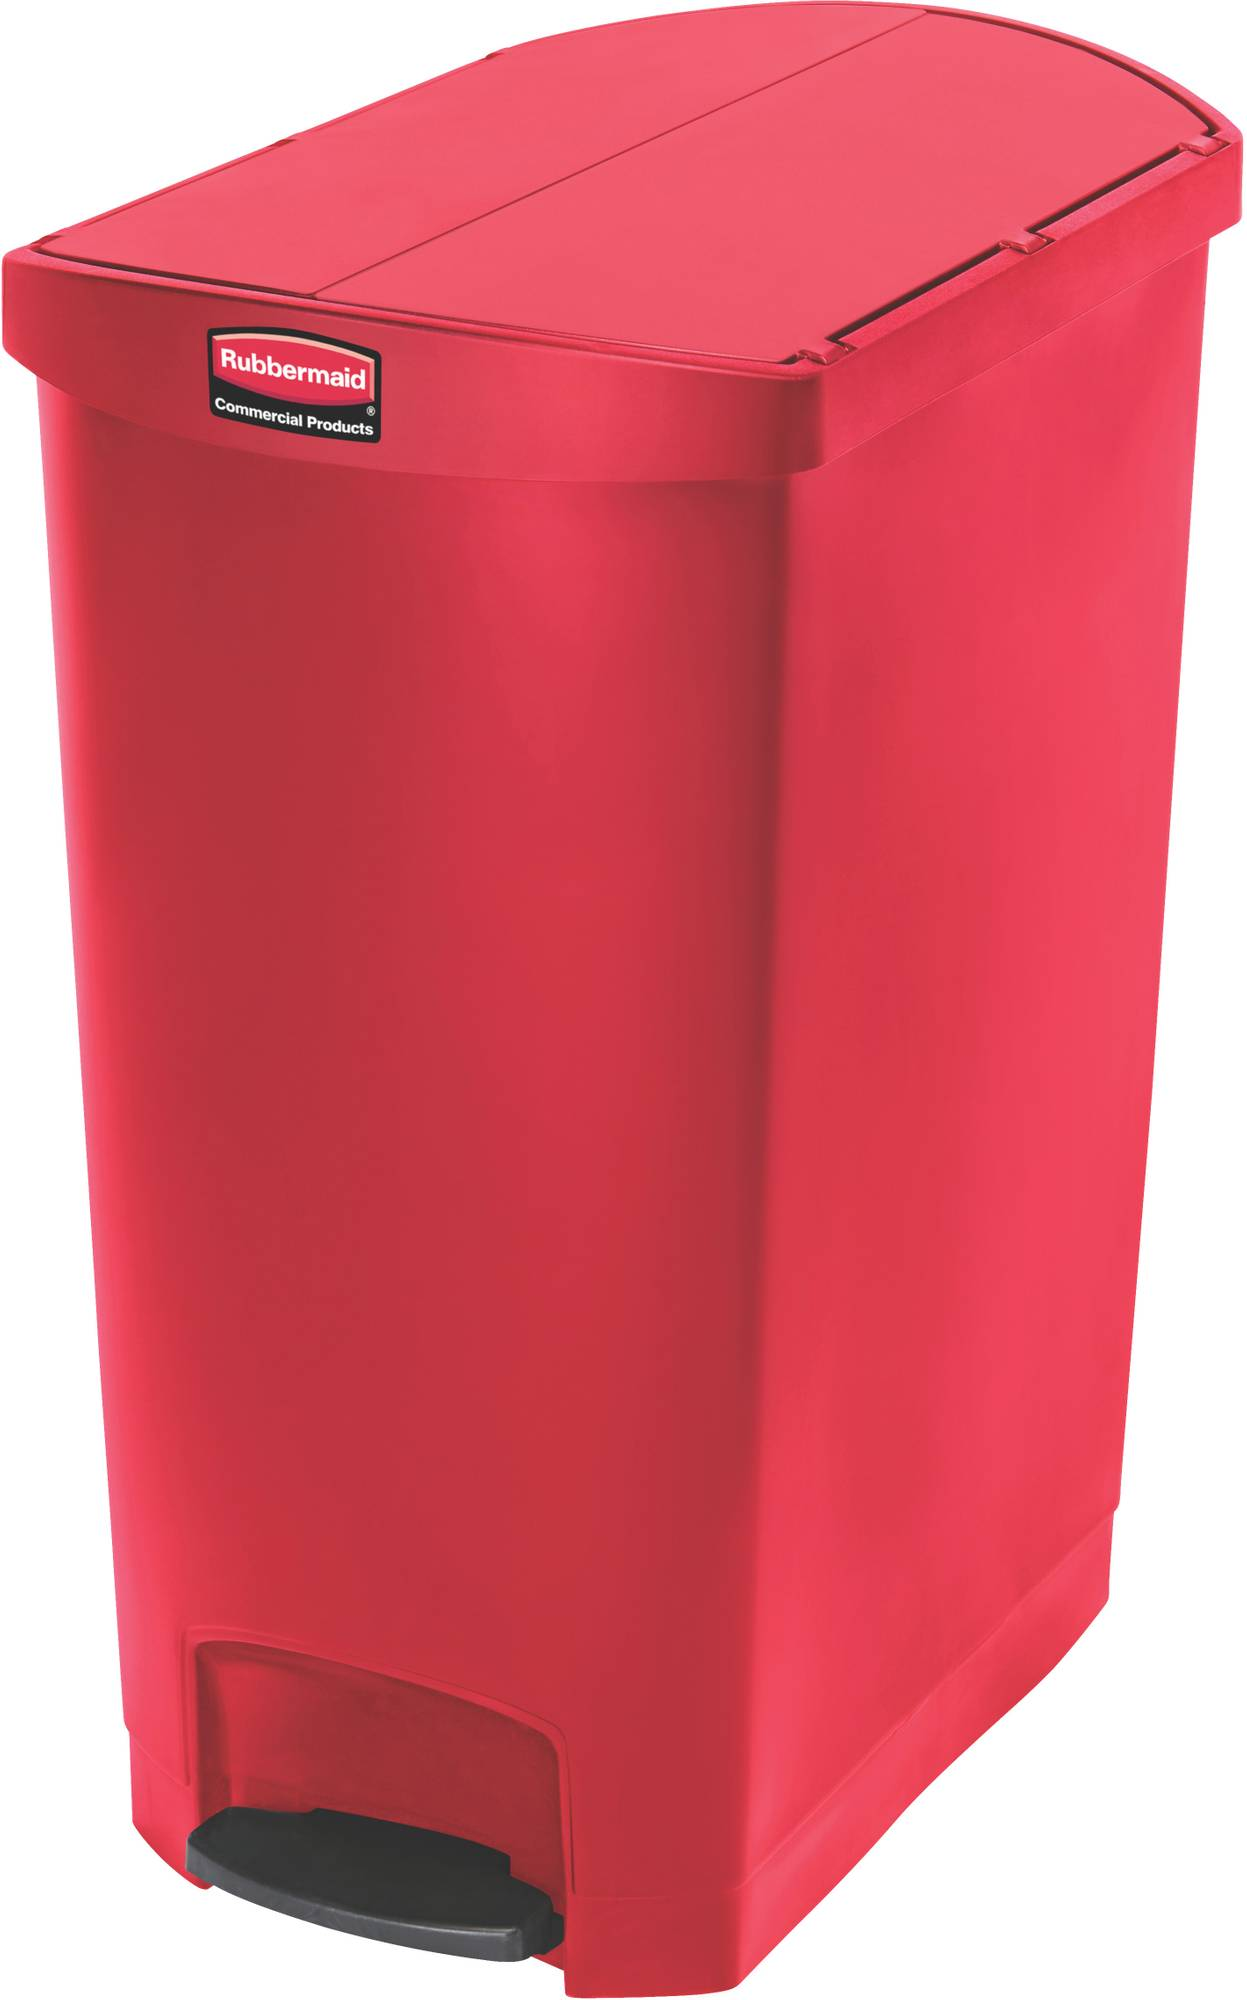 Rubbermaid Slim Jim Step On Container, End Step mit 90 Liter Füllmenge in Rot